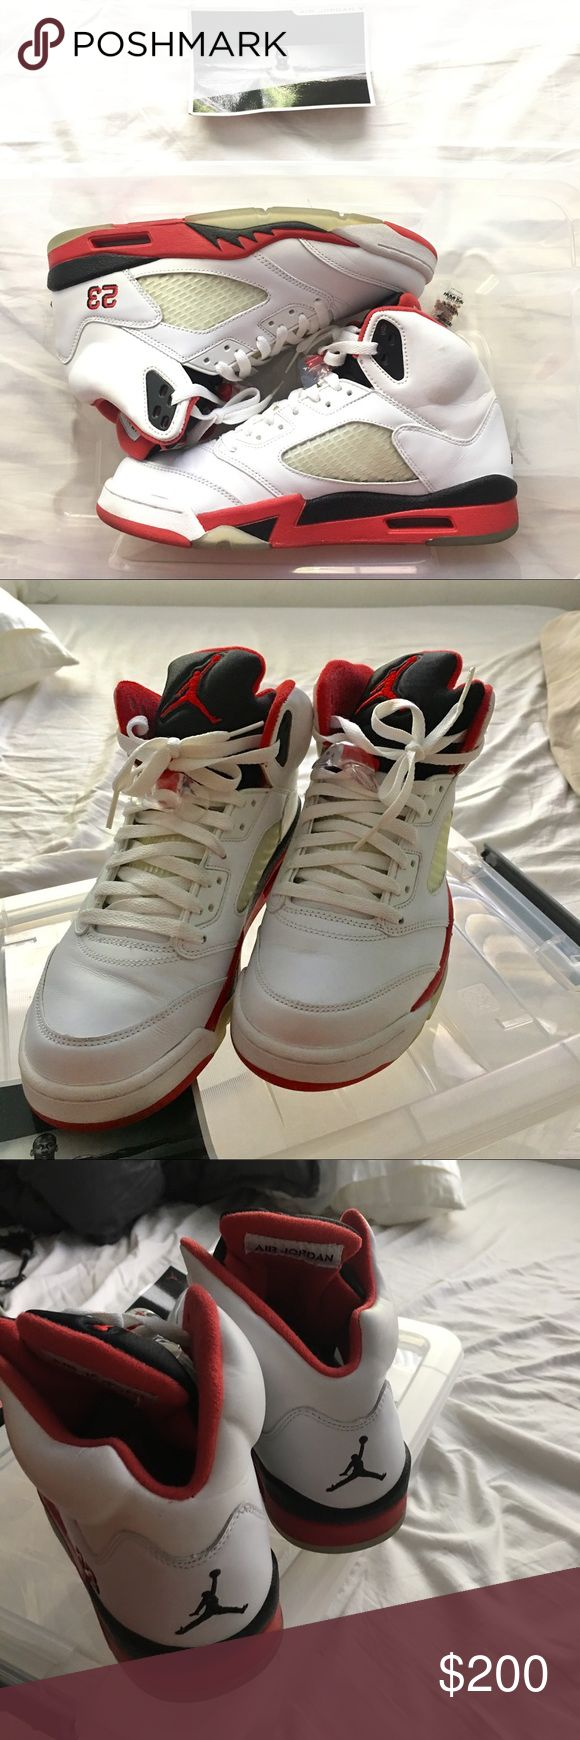 Jordan Fire Red IIIII fives 